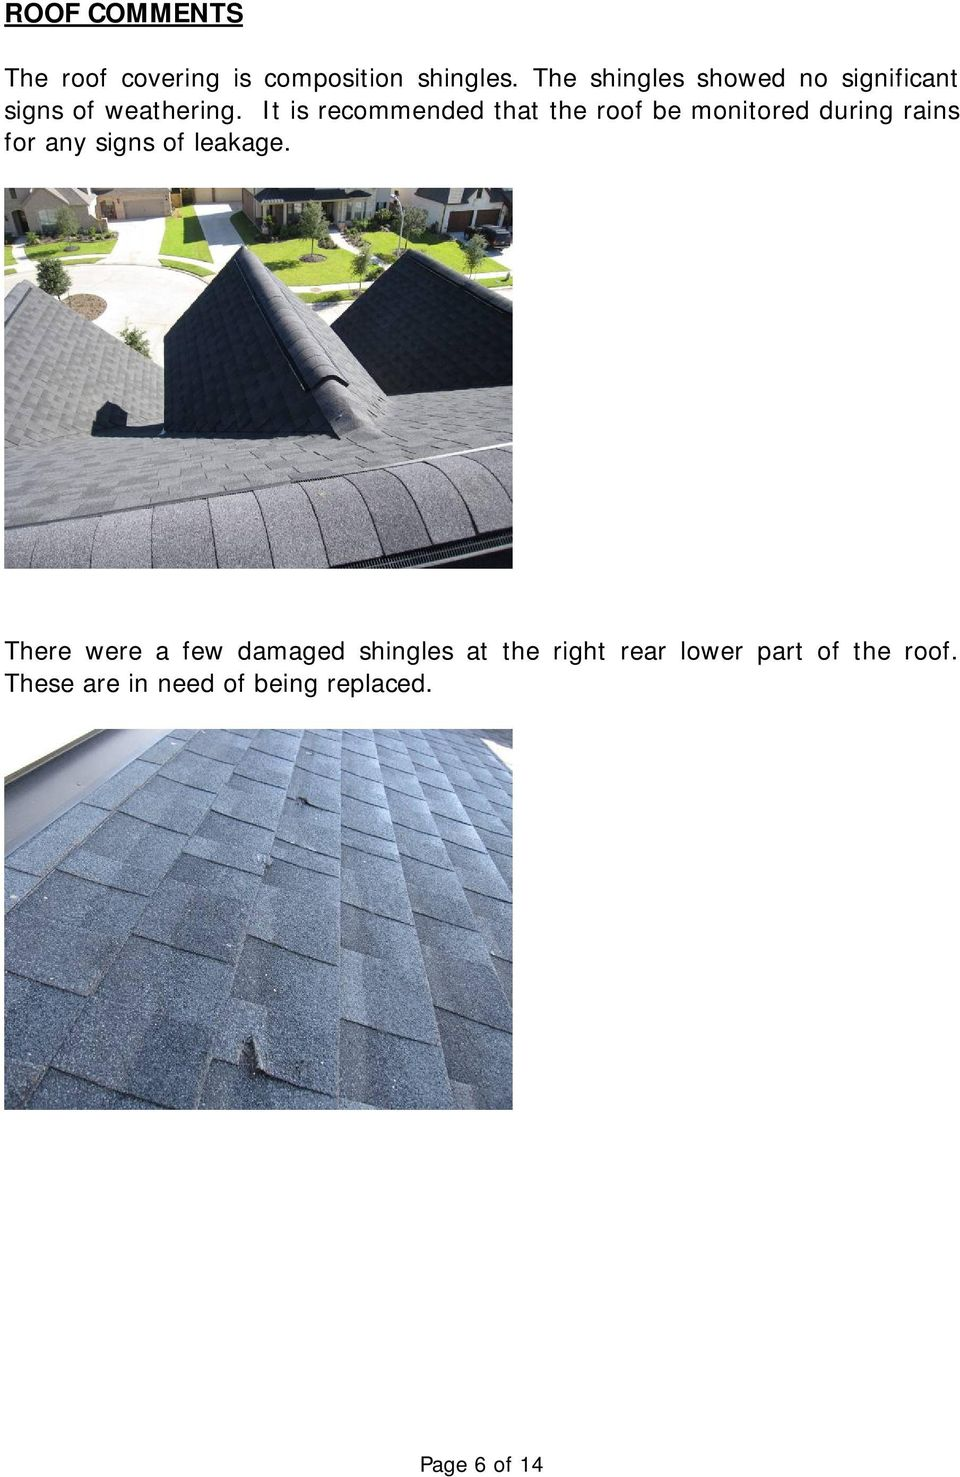 It is recommended that the roof be monitored during rains for any signs of